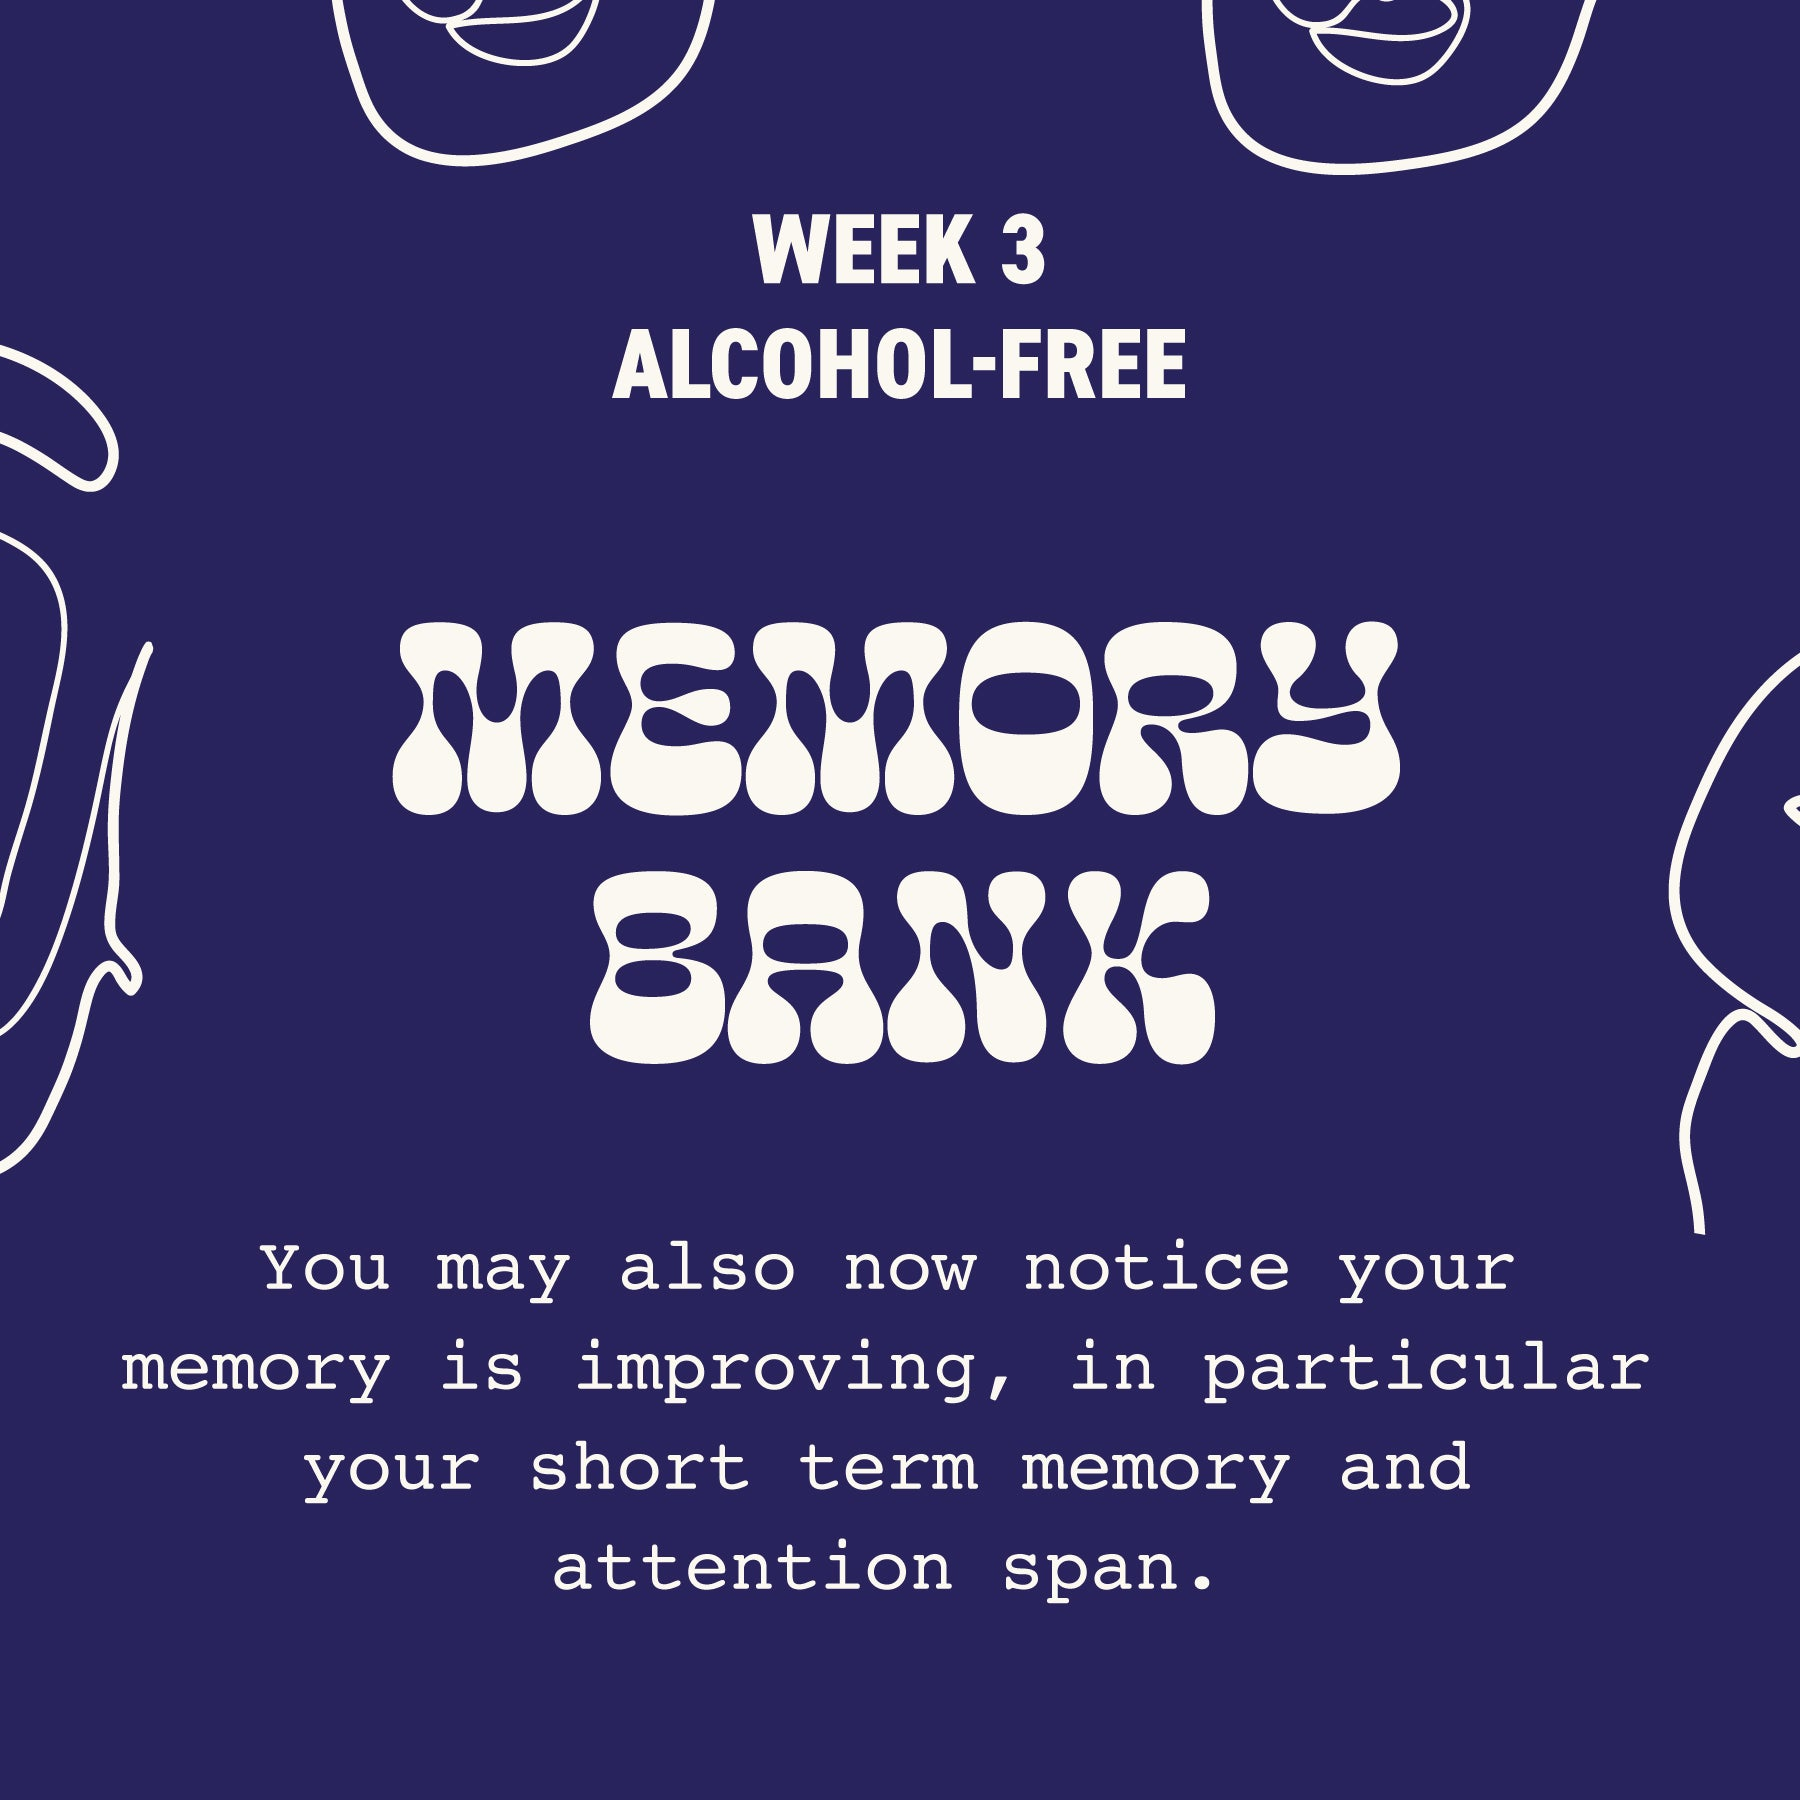 month off drinking benefits